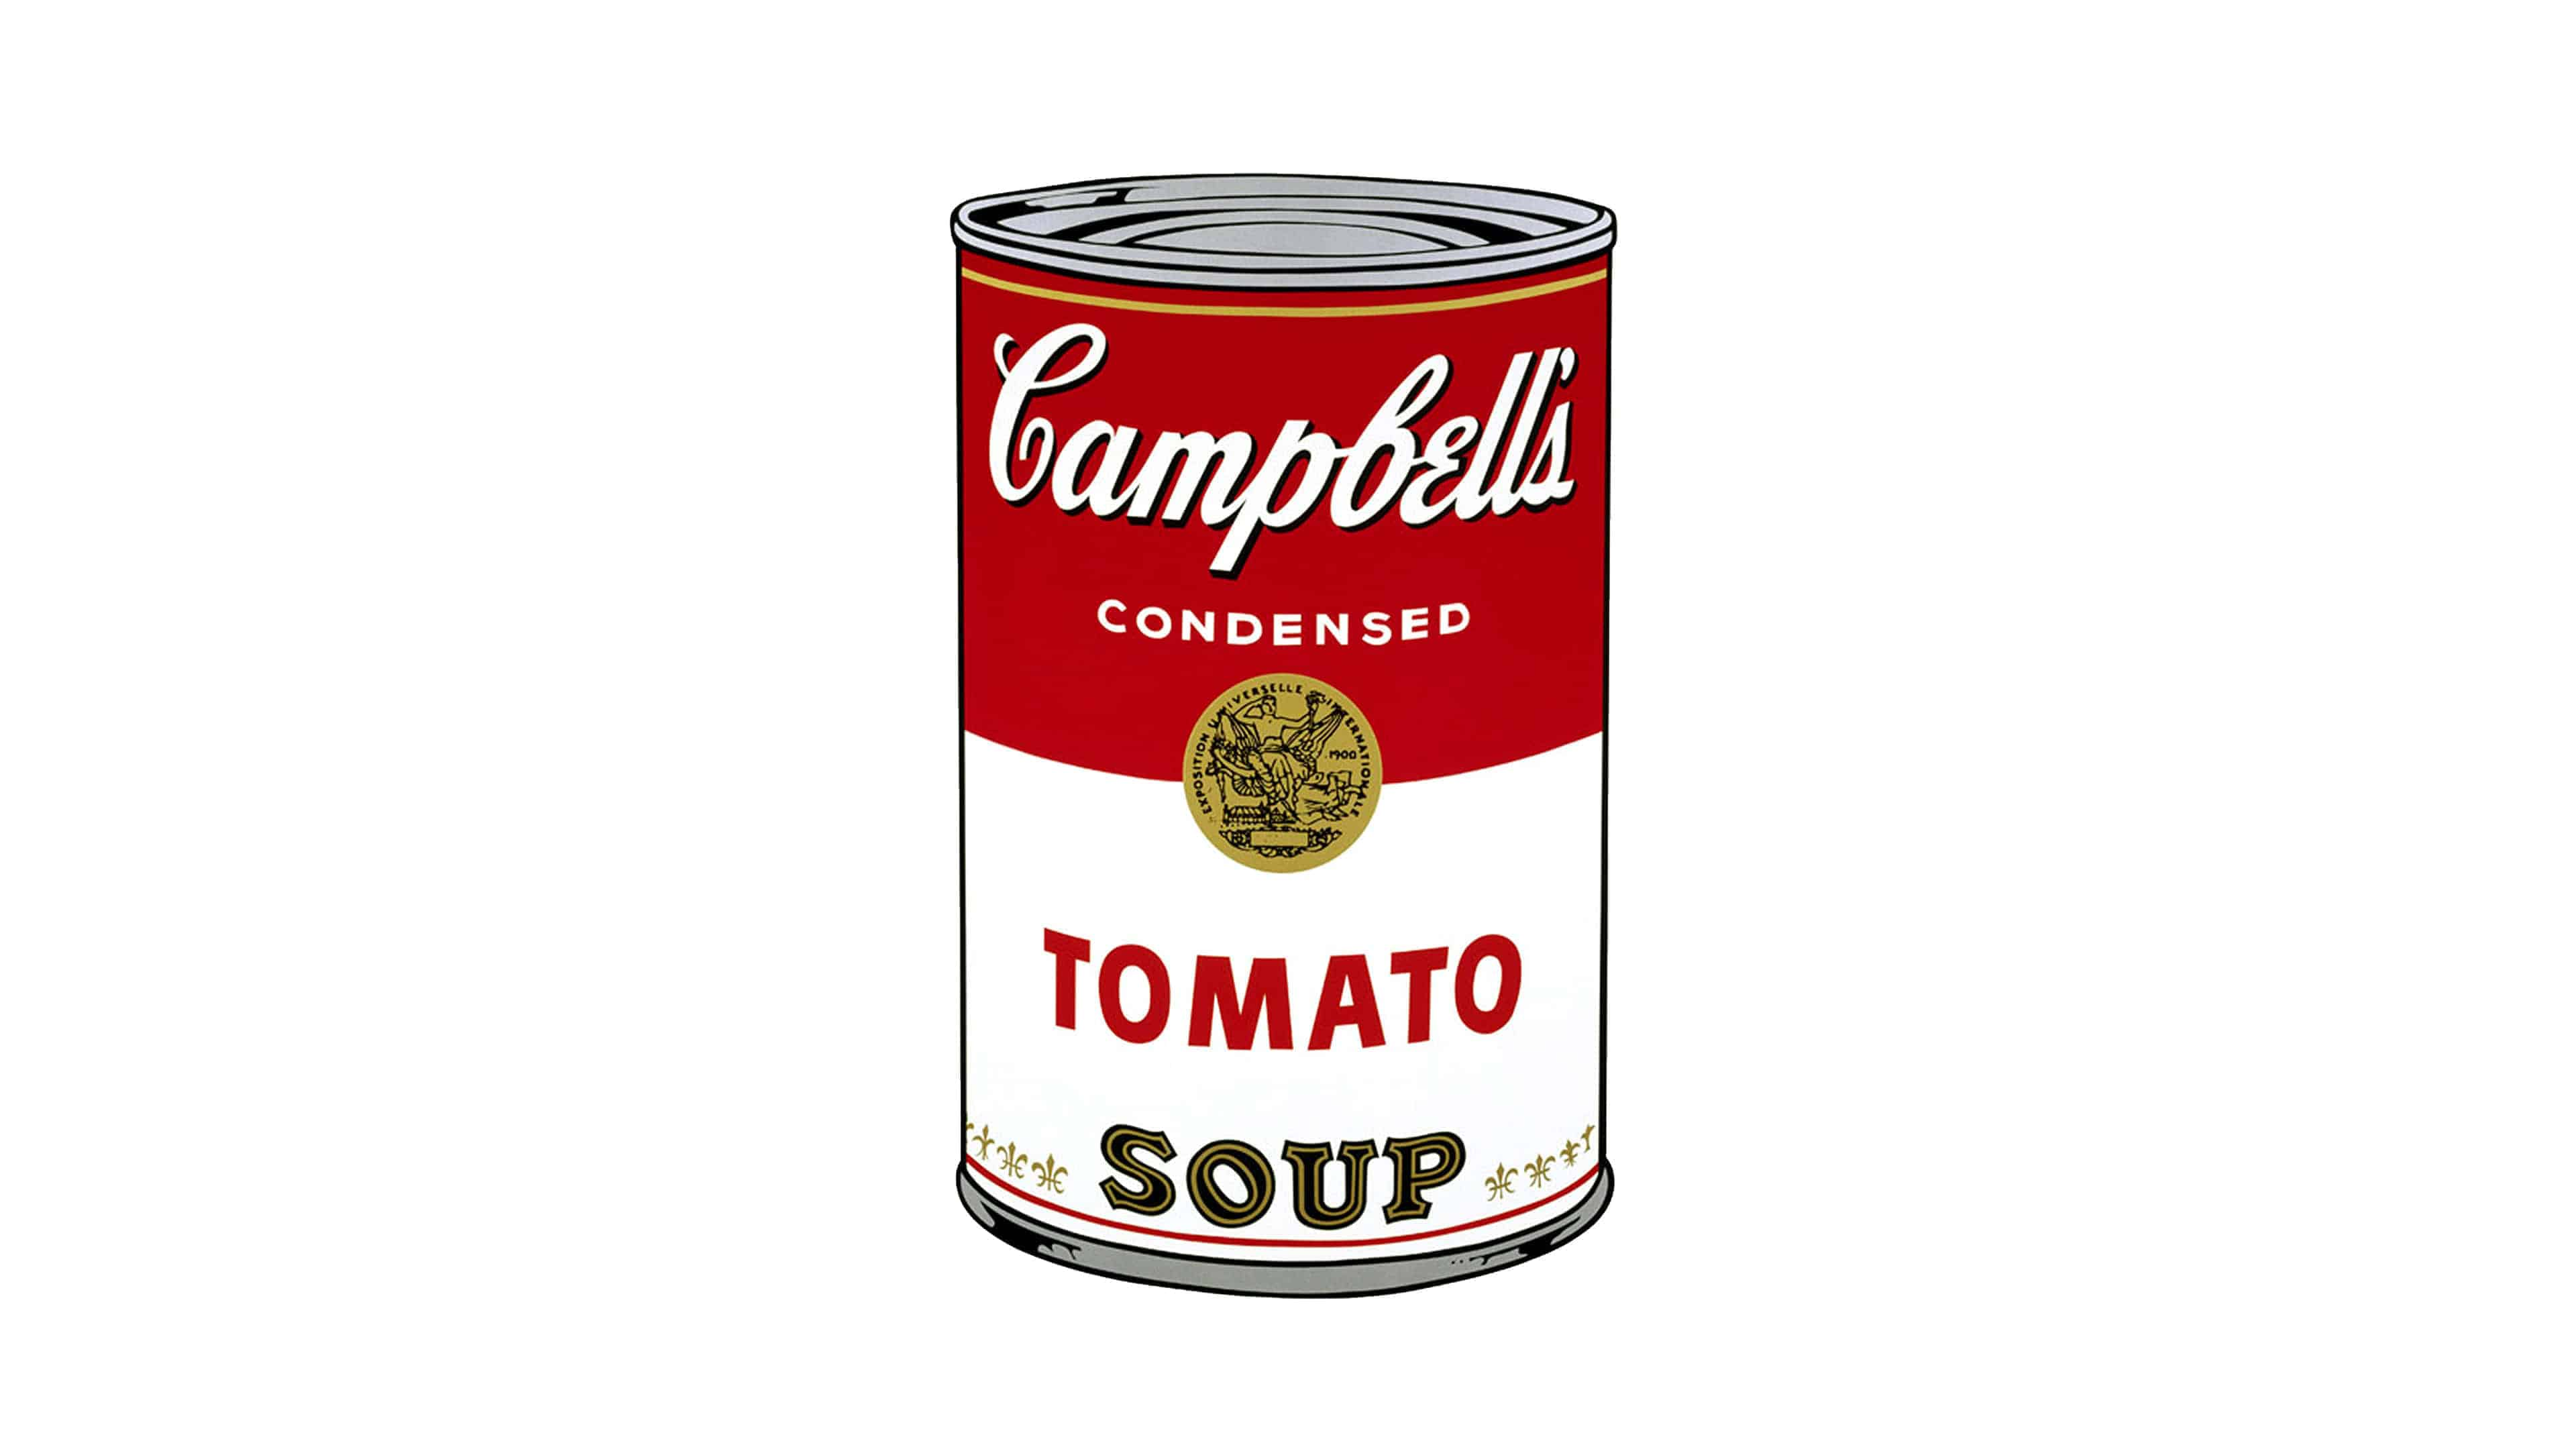 Campbells Soup Can Andry Warhol UHD 4K Wallpapers